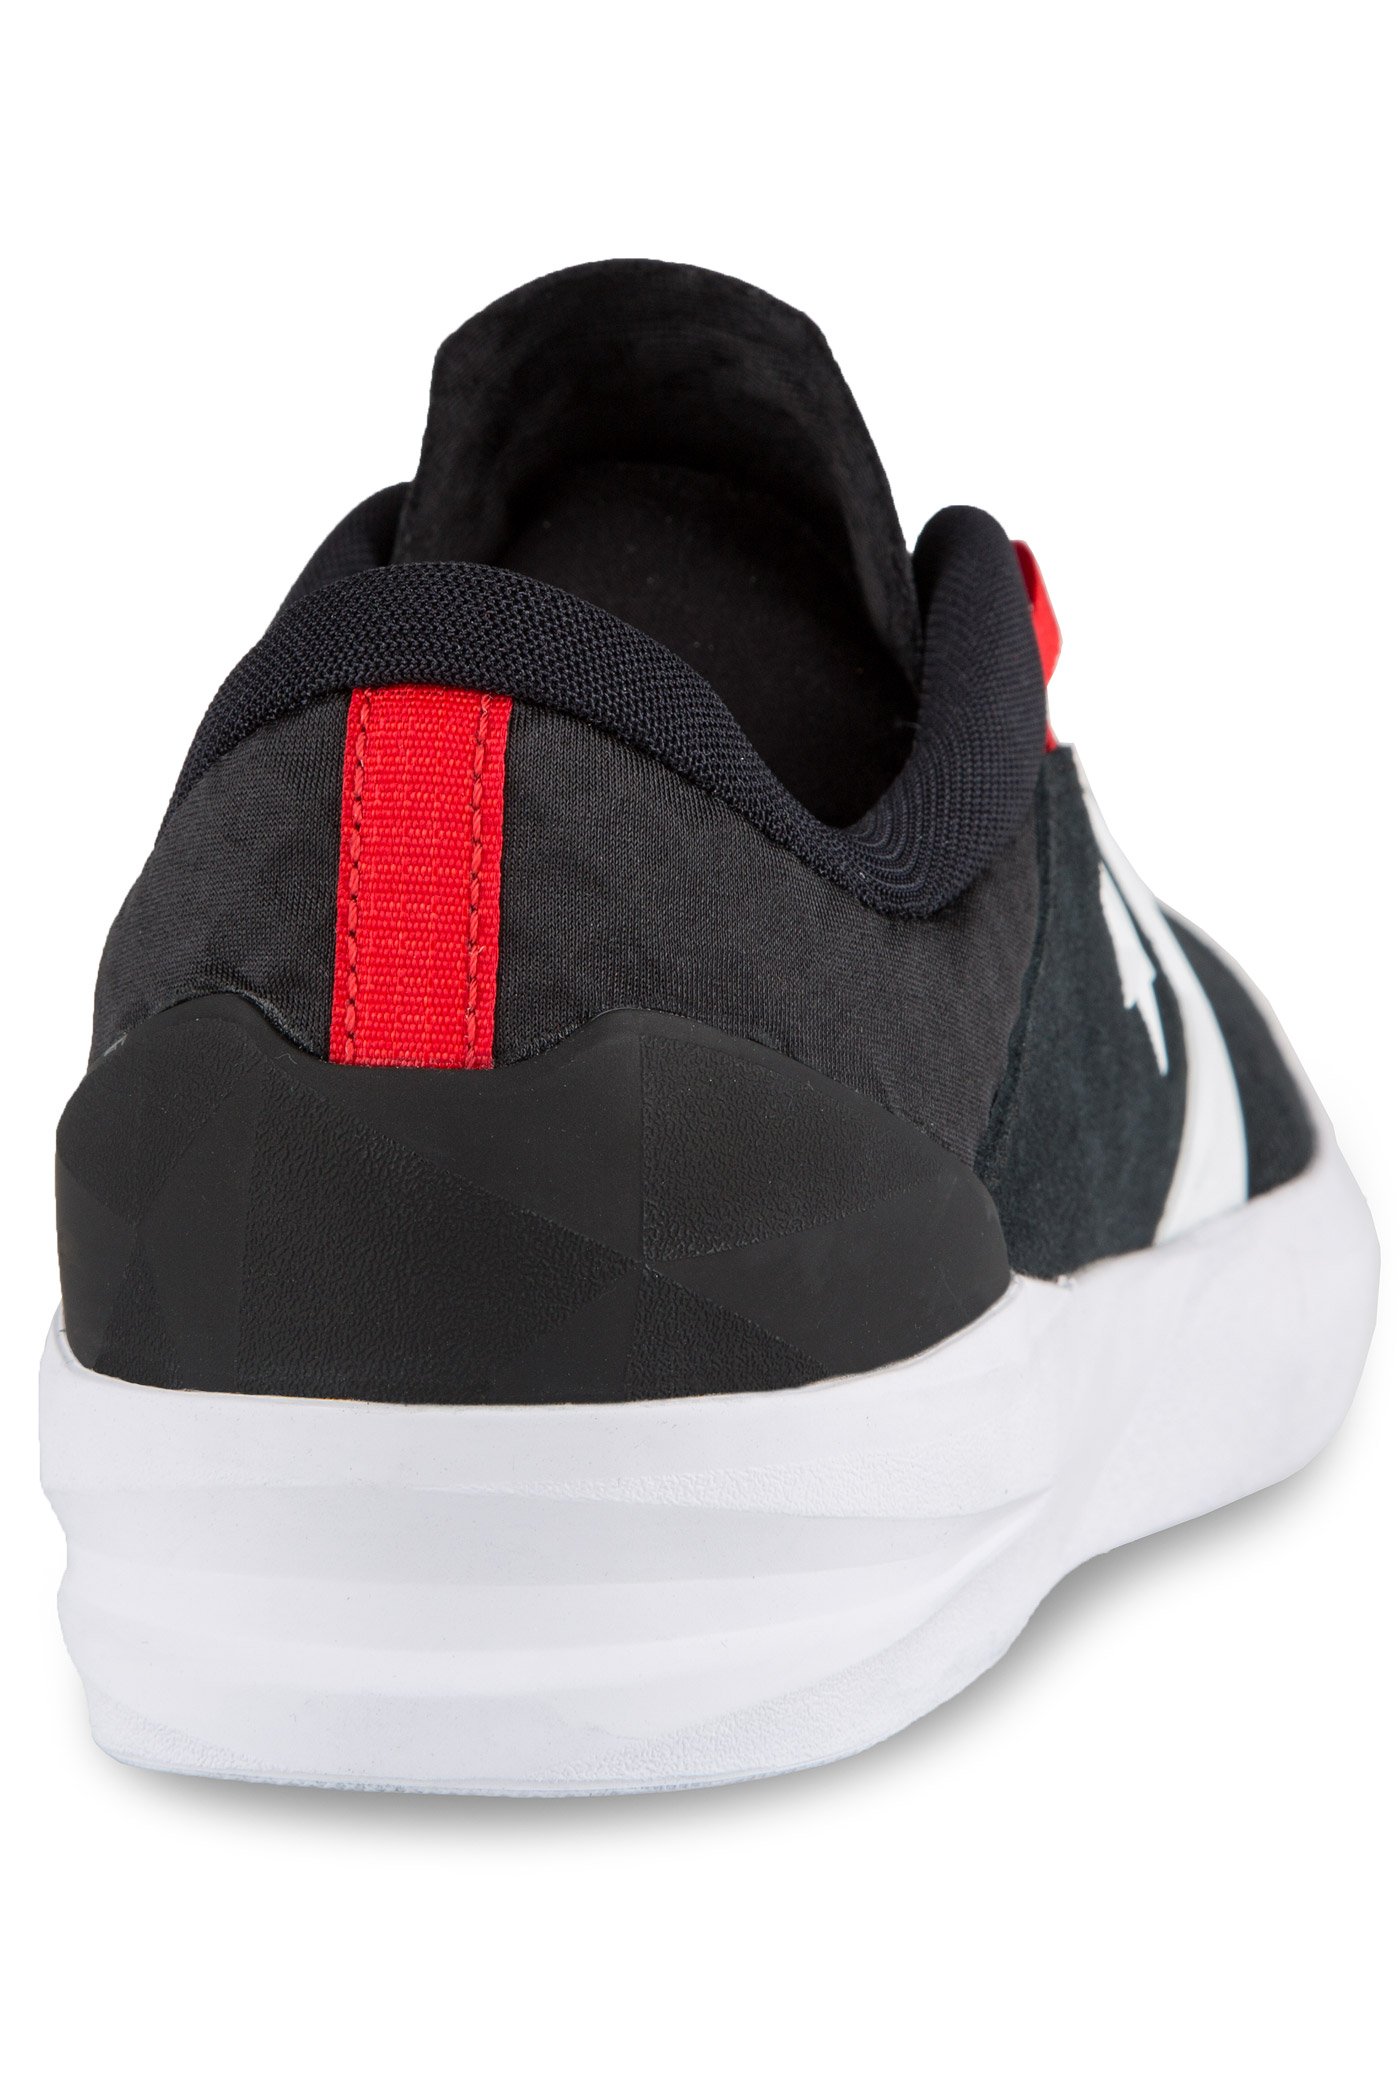 Converse CONS Metric CLS Shoe (black white red) buy at skatedeluxe debc68a920